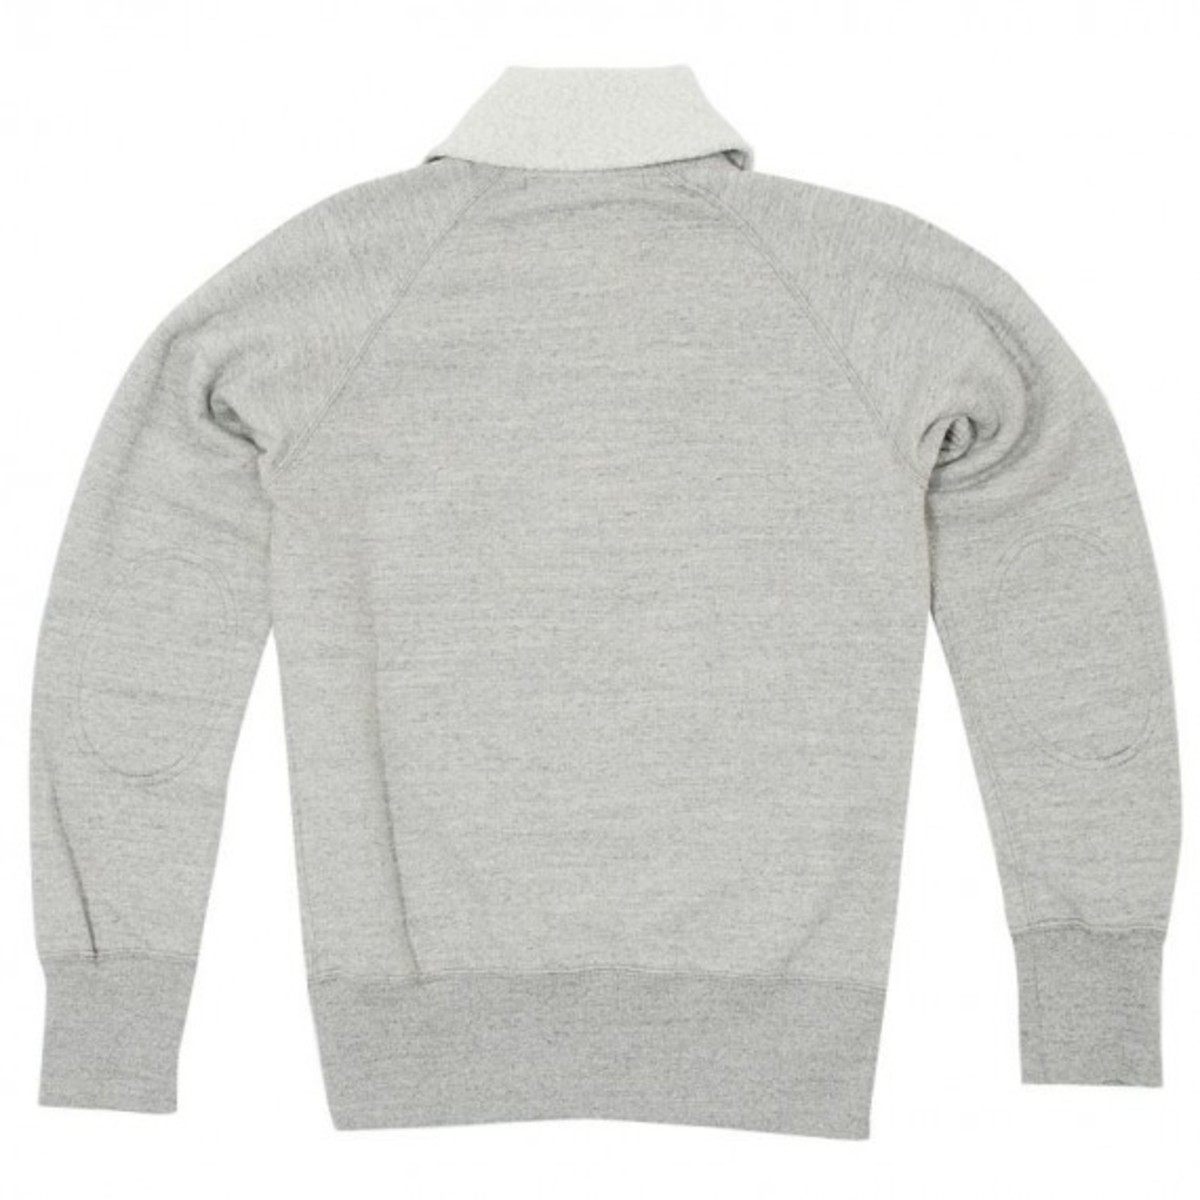 jersey-clip-sweat-02